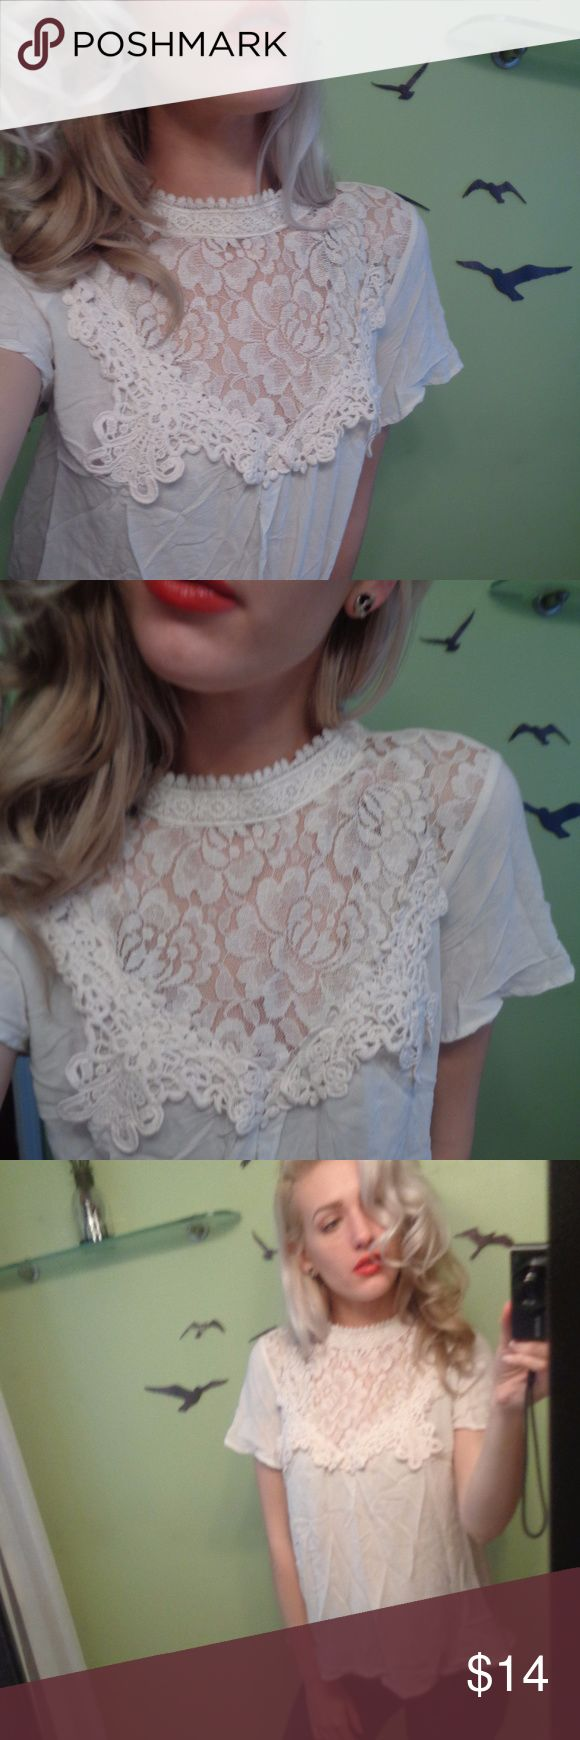 Clover & scout ivory lace top t shirt blouse high Clover + Scout ivory cream white lace front high neck shirt top blouse Single button behind neck, size Med  *TAGS- love lemons, stone cold fox, American rag eagle, free people, Forever 21, H&M, Hollister* Clover + Scout Tops Blouses